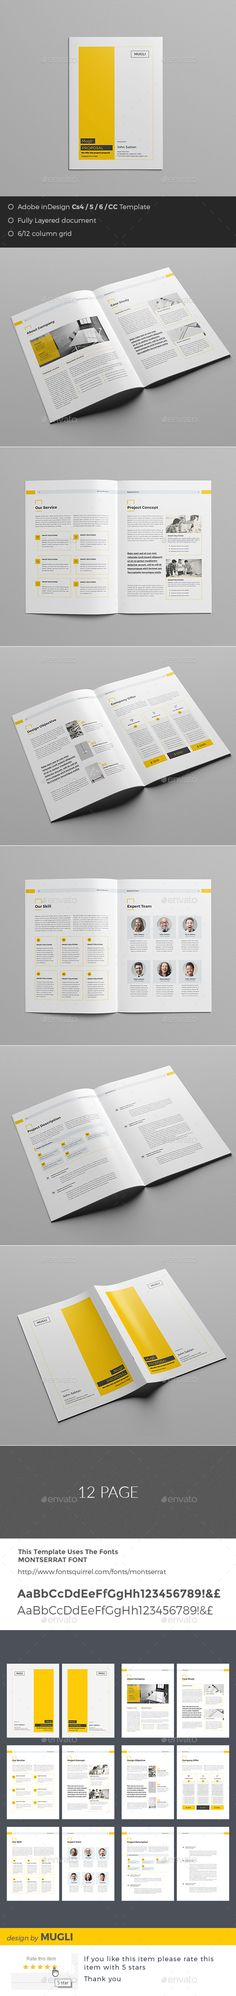 Clean And Professional Proposal Template Indesign Indd  Proposal